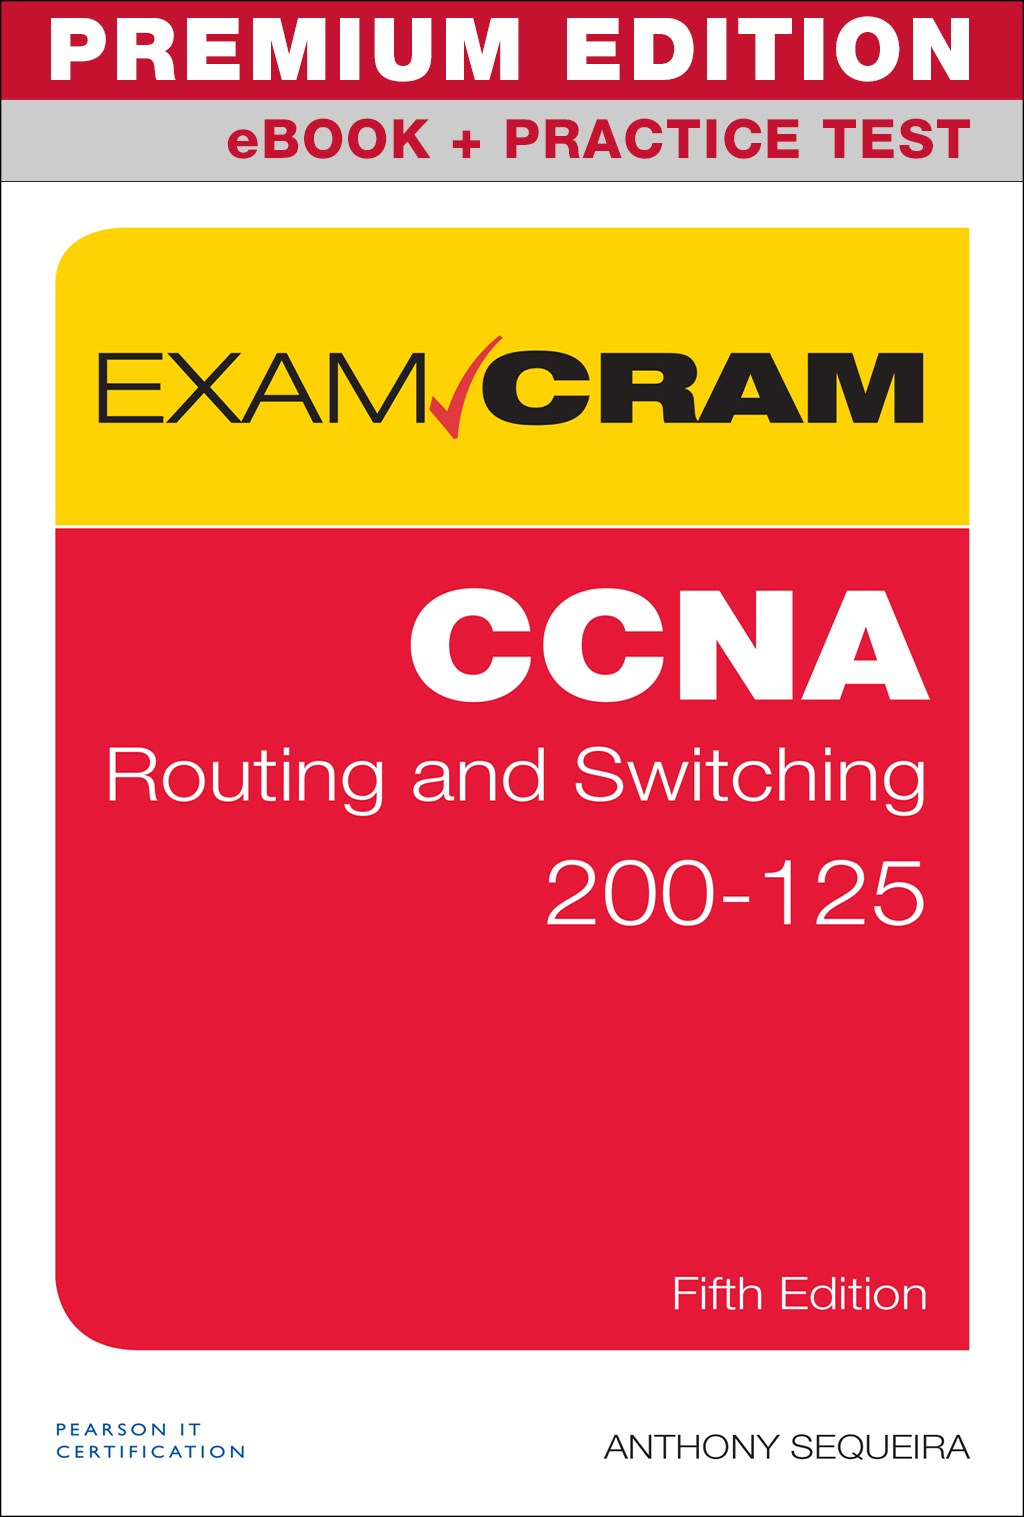 CCNA Routing and Switching 200-125 Exam Cram Premium Edition and Practice Test